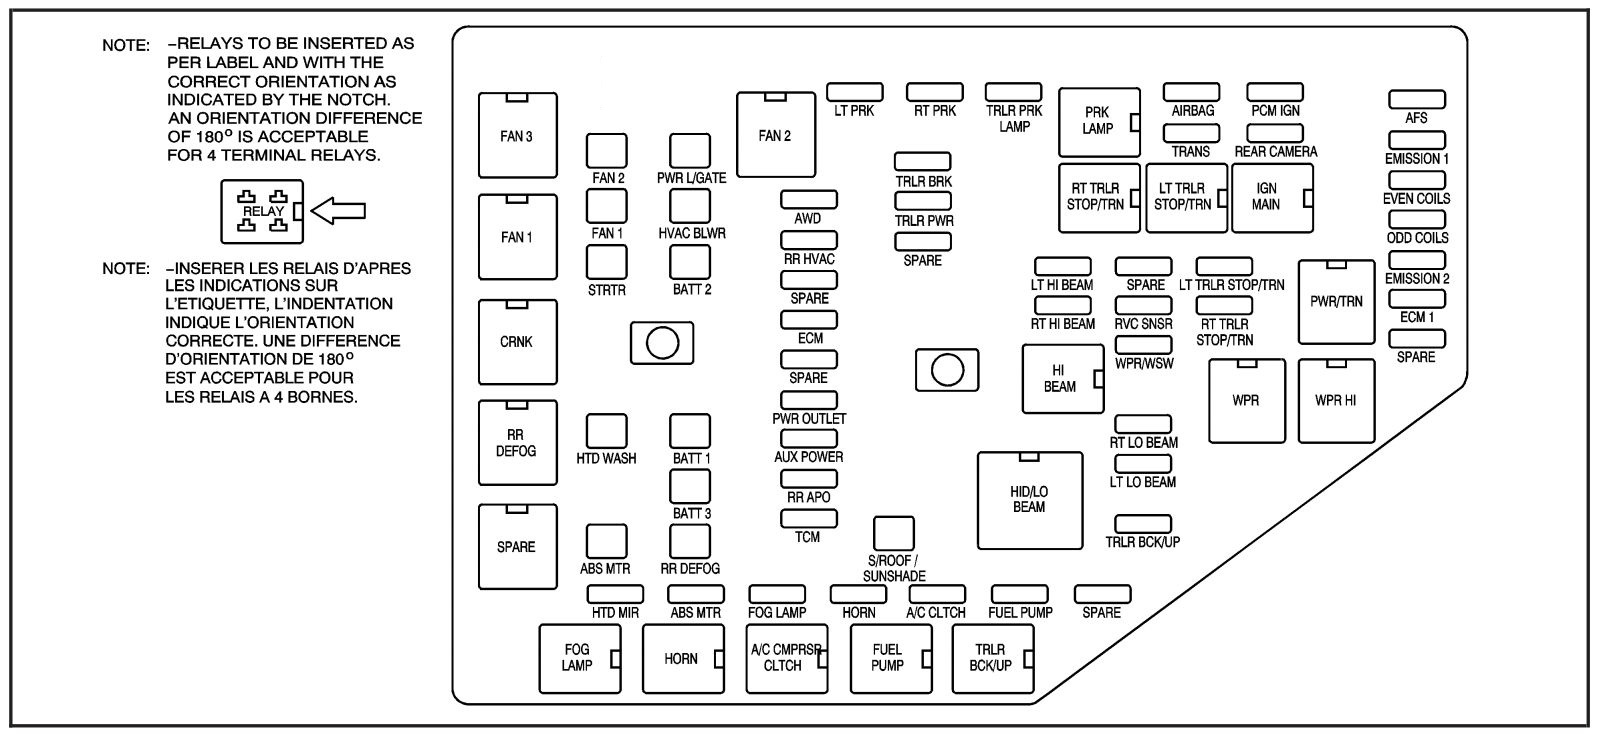 Hydraulic Elevator Wiring Diagram Mce Controller Library. 2008 Acadia Fuse Box Diagram. Wiring. Ricon S Series Wiring Diagram 1231 At Scoala.co